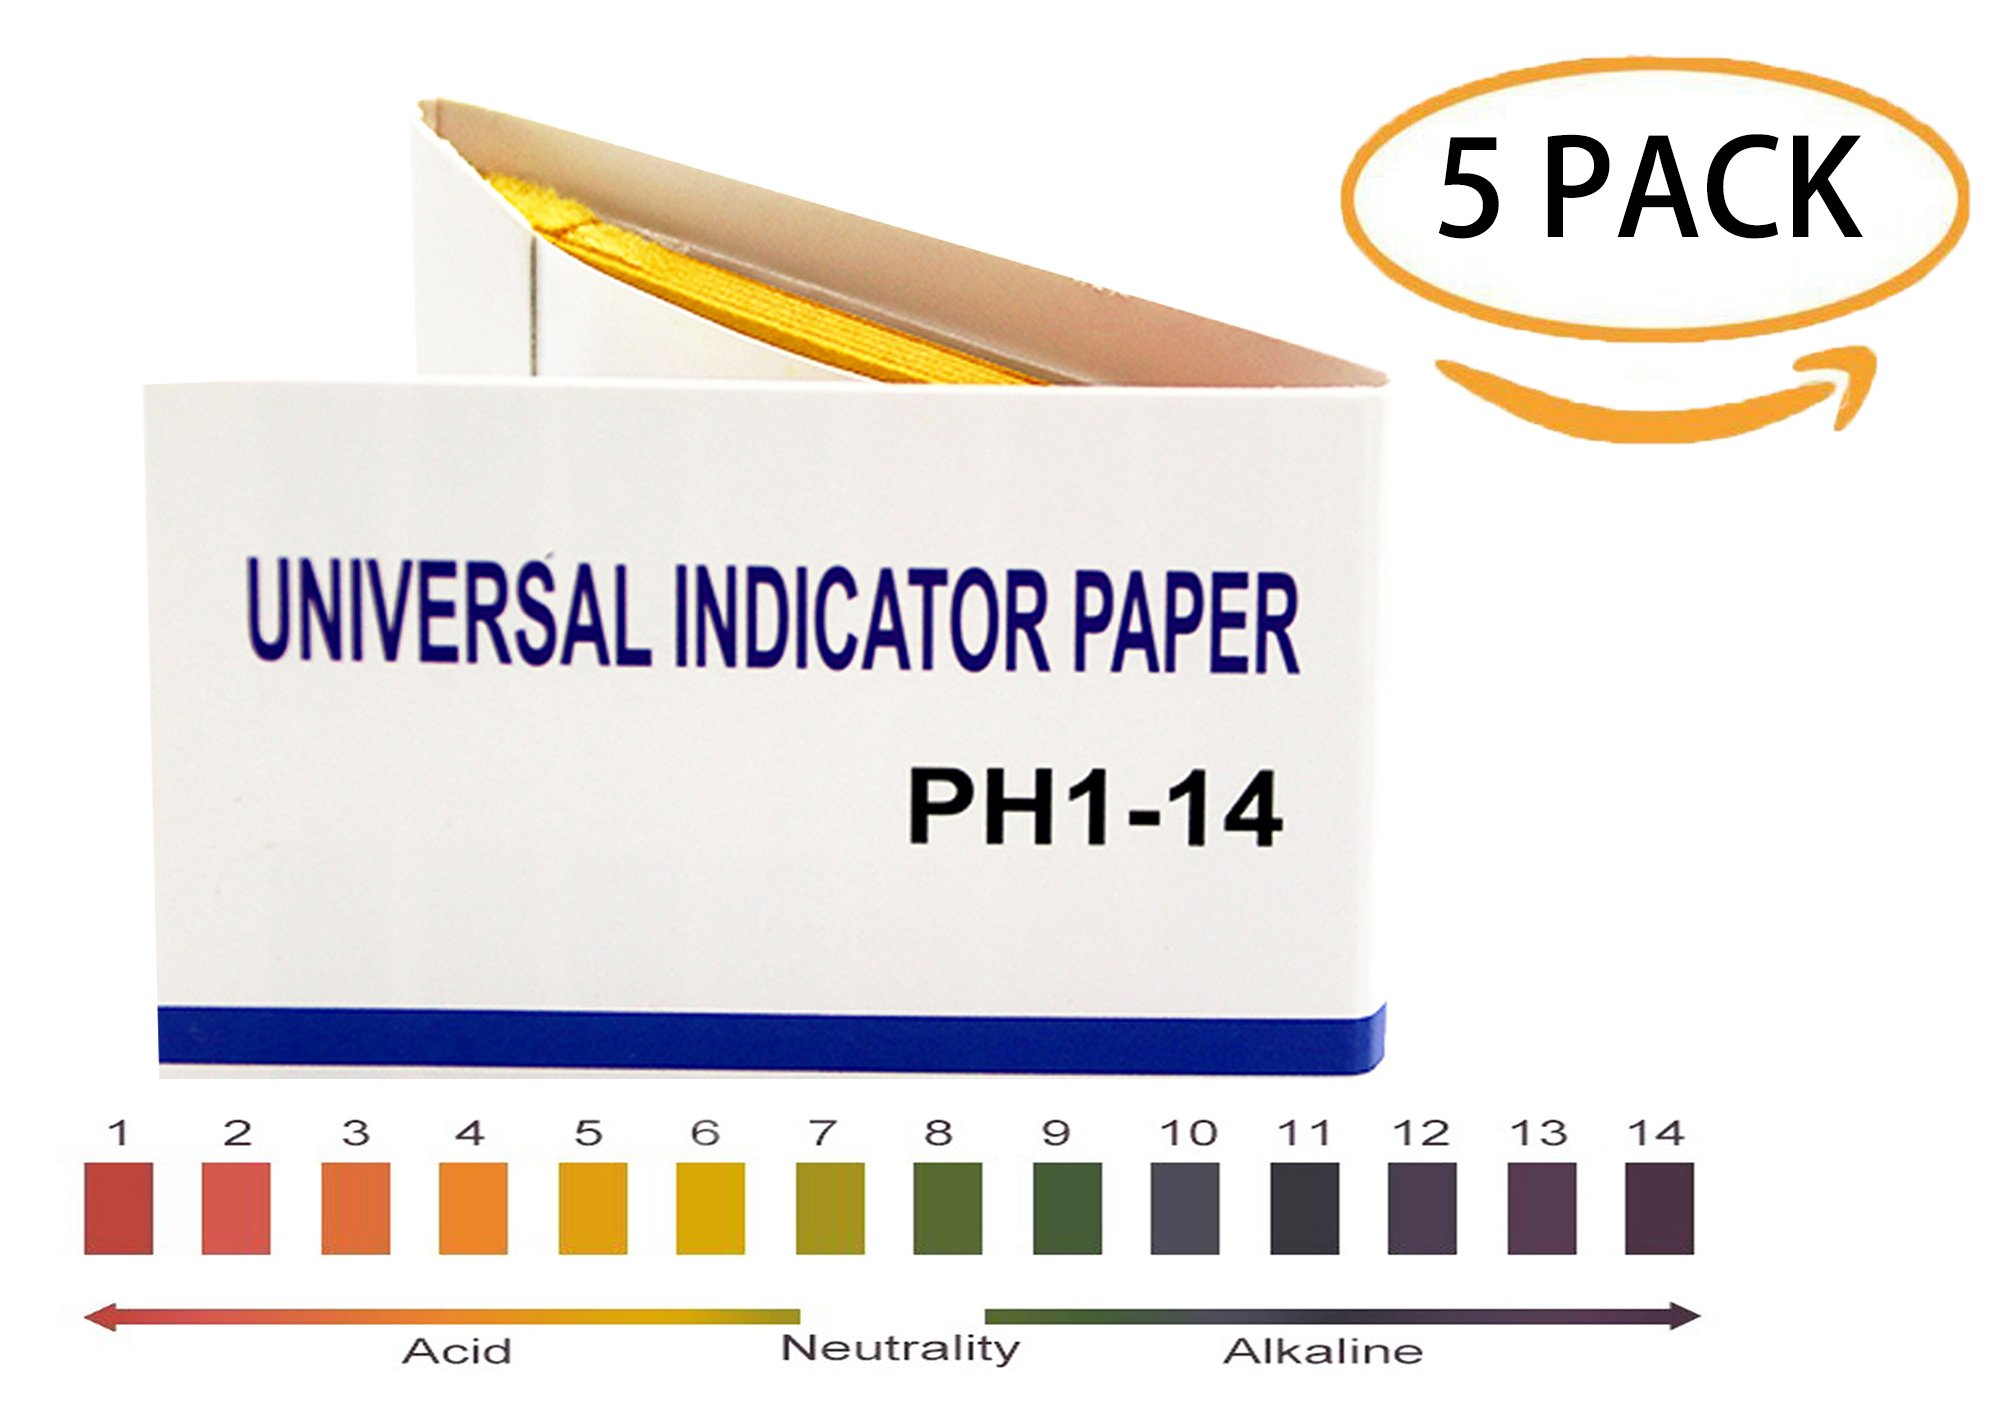 PH 1-14 test Paper,PH universal Indicator Paper for testing water quality/soil/urine/saliva/cosmetics,80 per pack(5 Pack) by Seresta